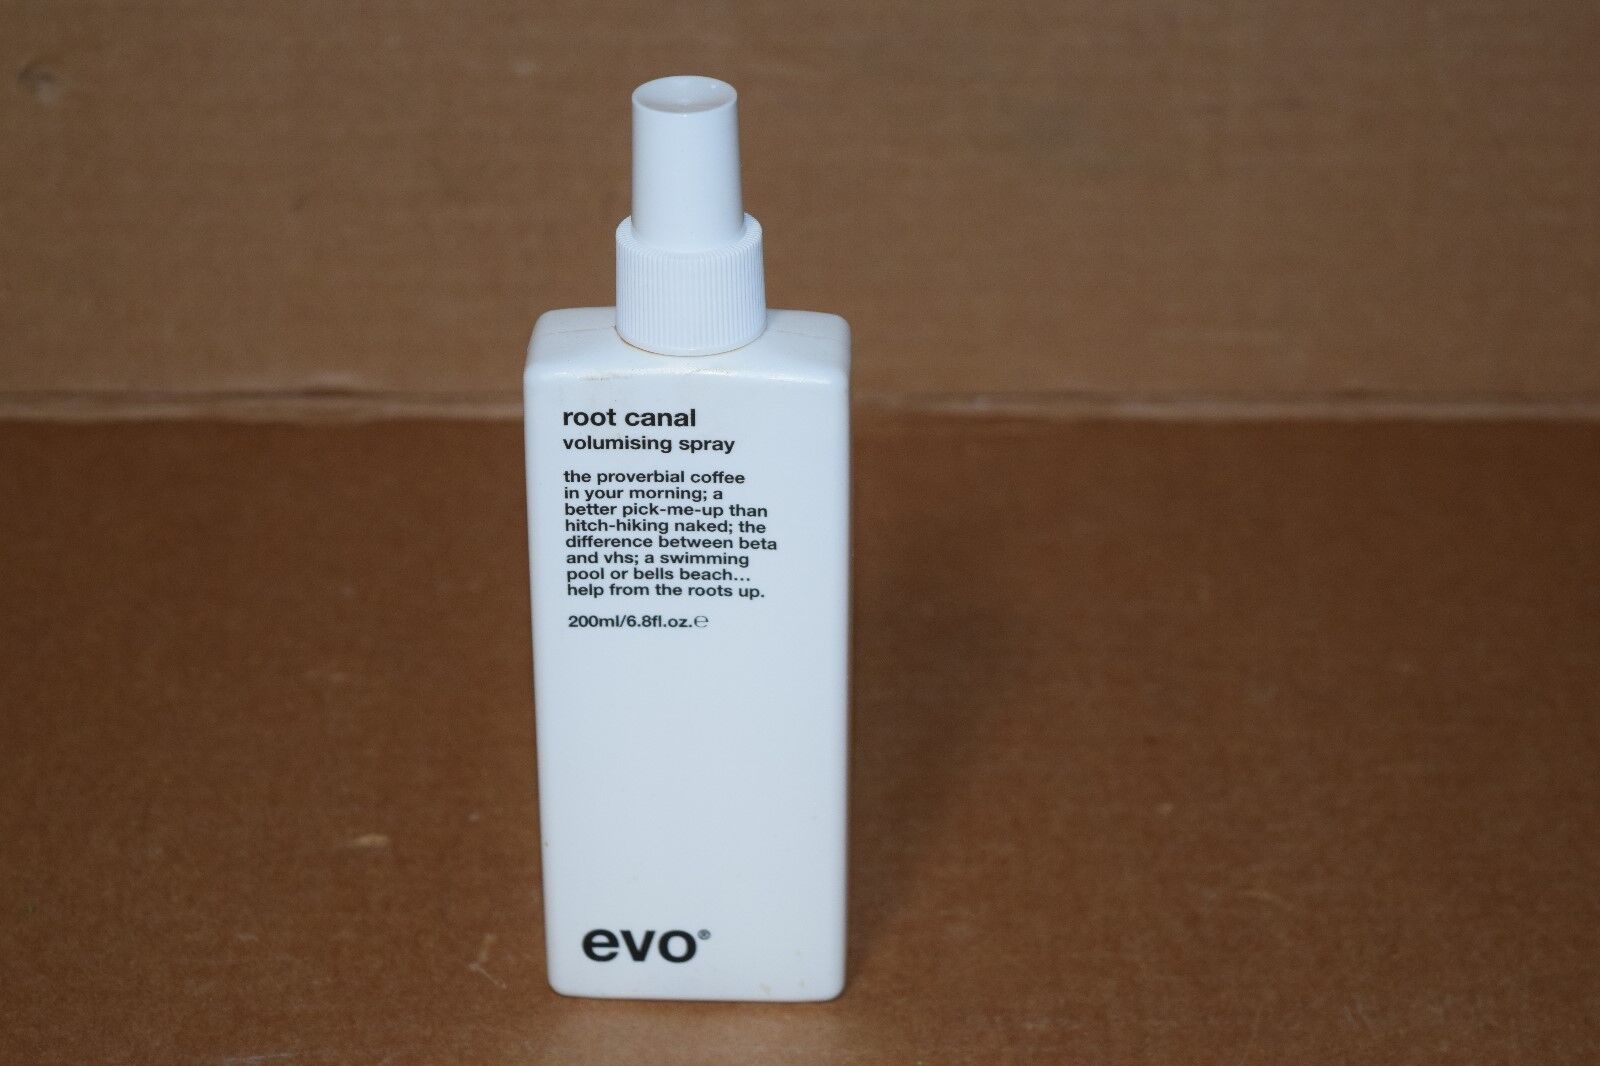 EVO ROOT CANAL VOLUMISING SPRAY HAIR PRODUCT, 6.8 oz